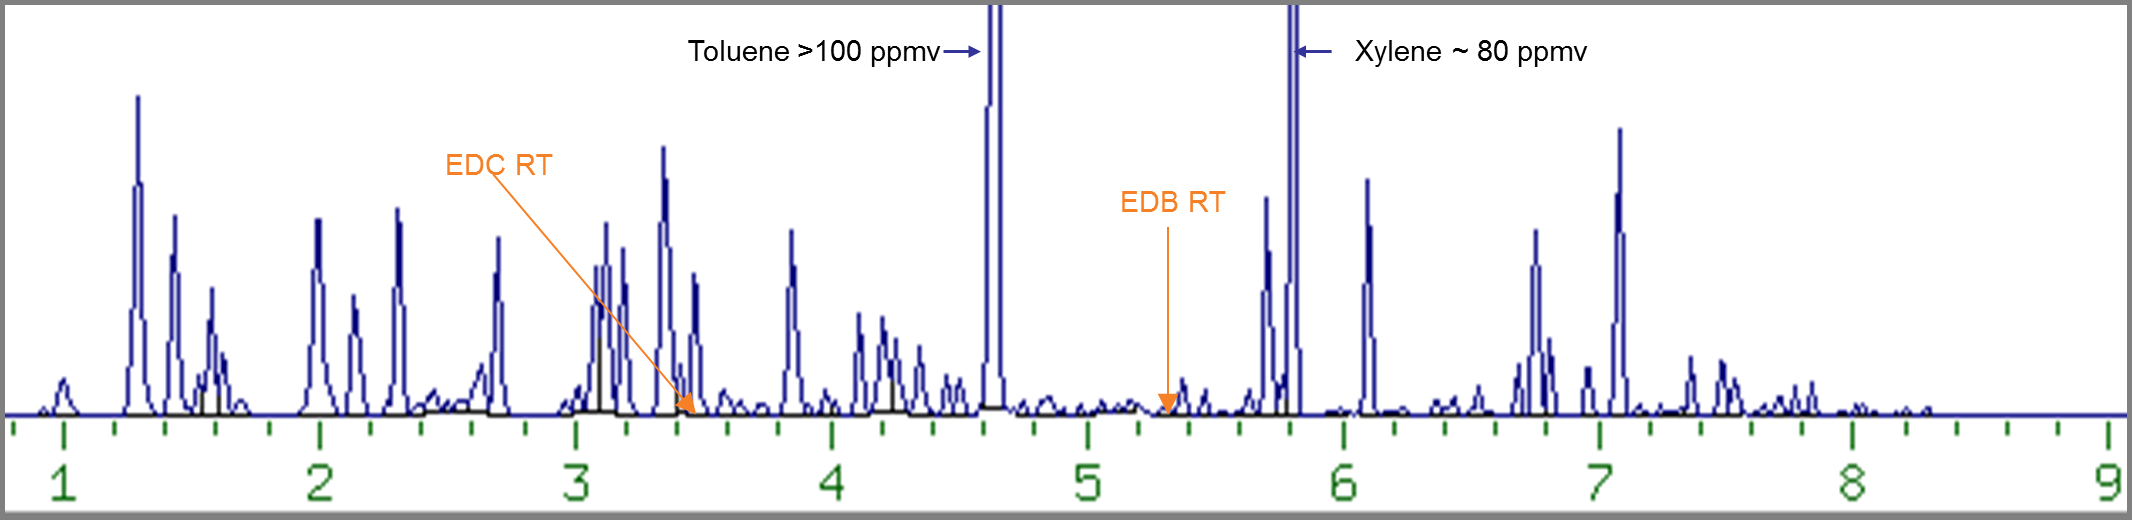 Conventional GC/MS Total Ion Chromatogram of 0.1%v/v TPH standard spiked with sub-ppbv EDB and EDC.